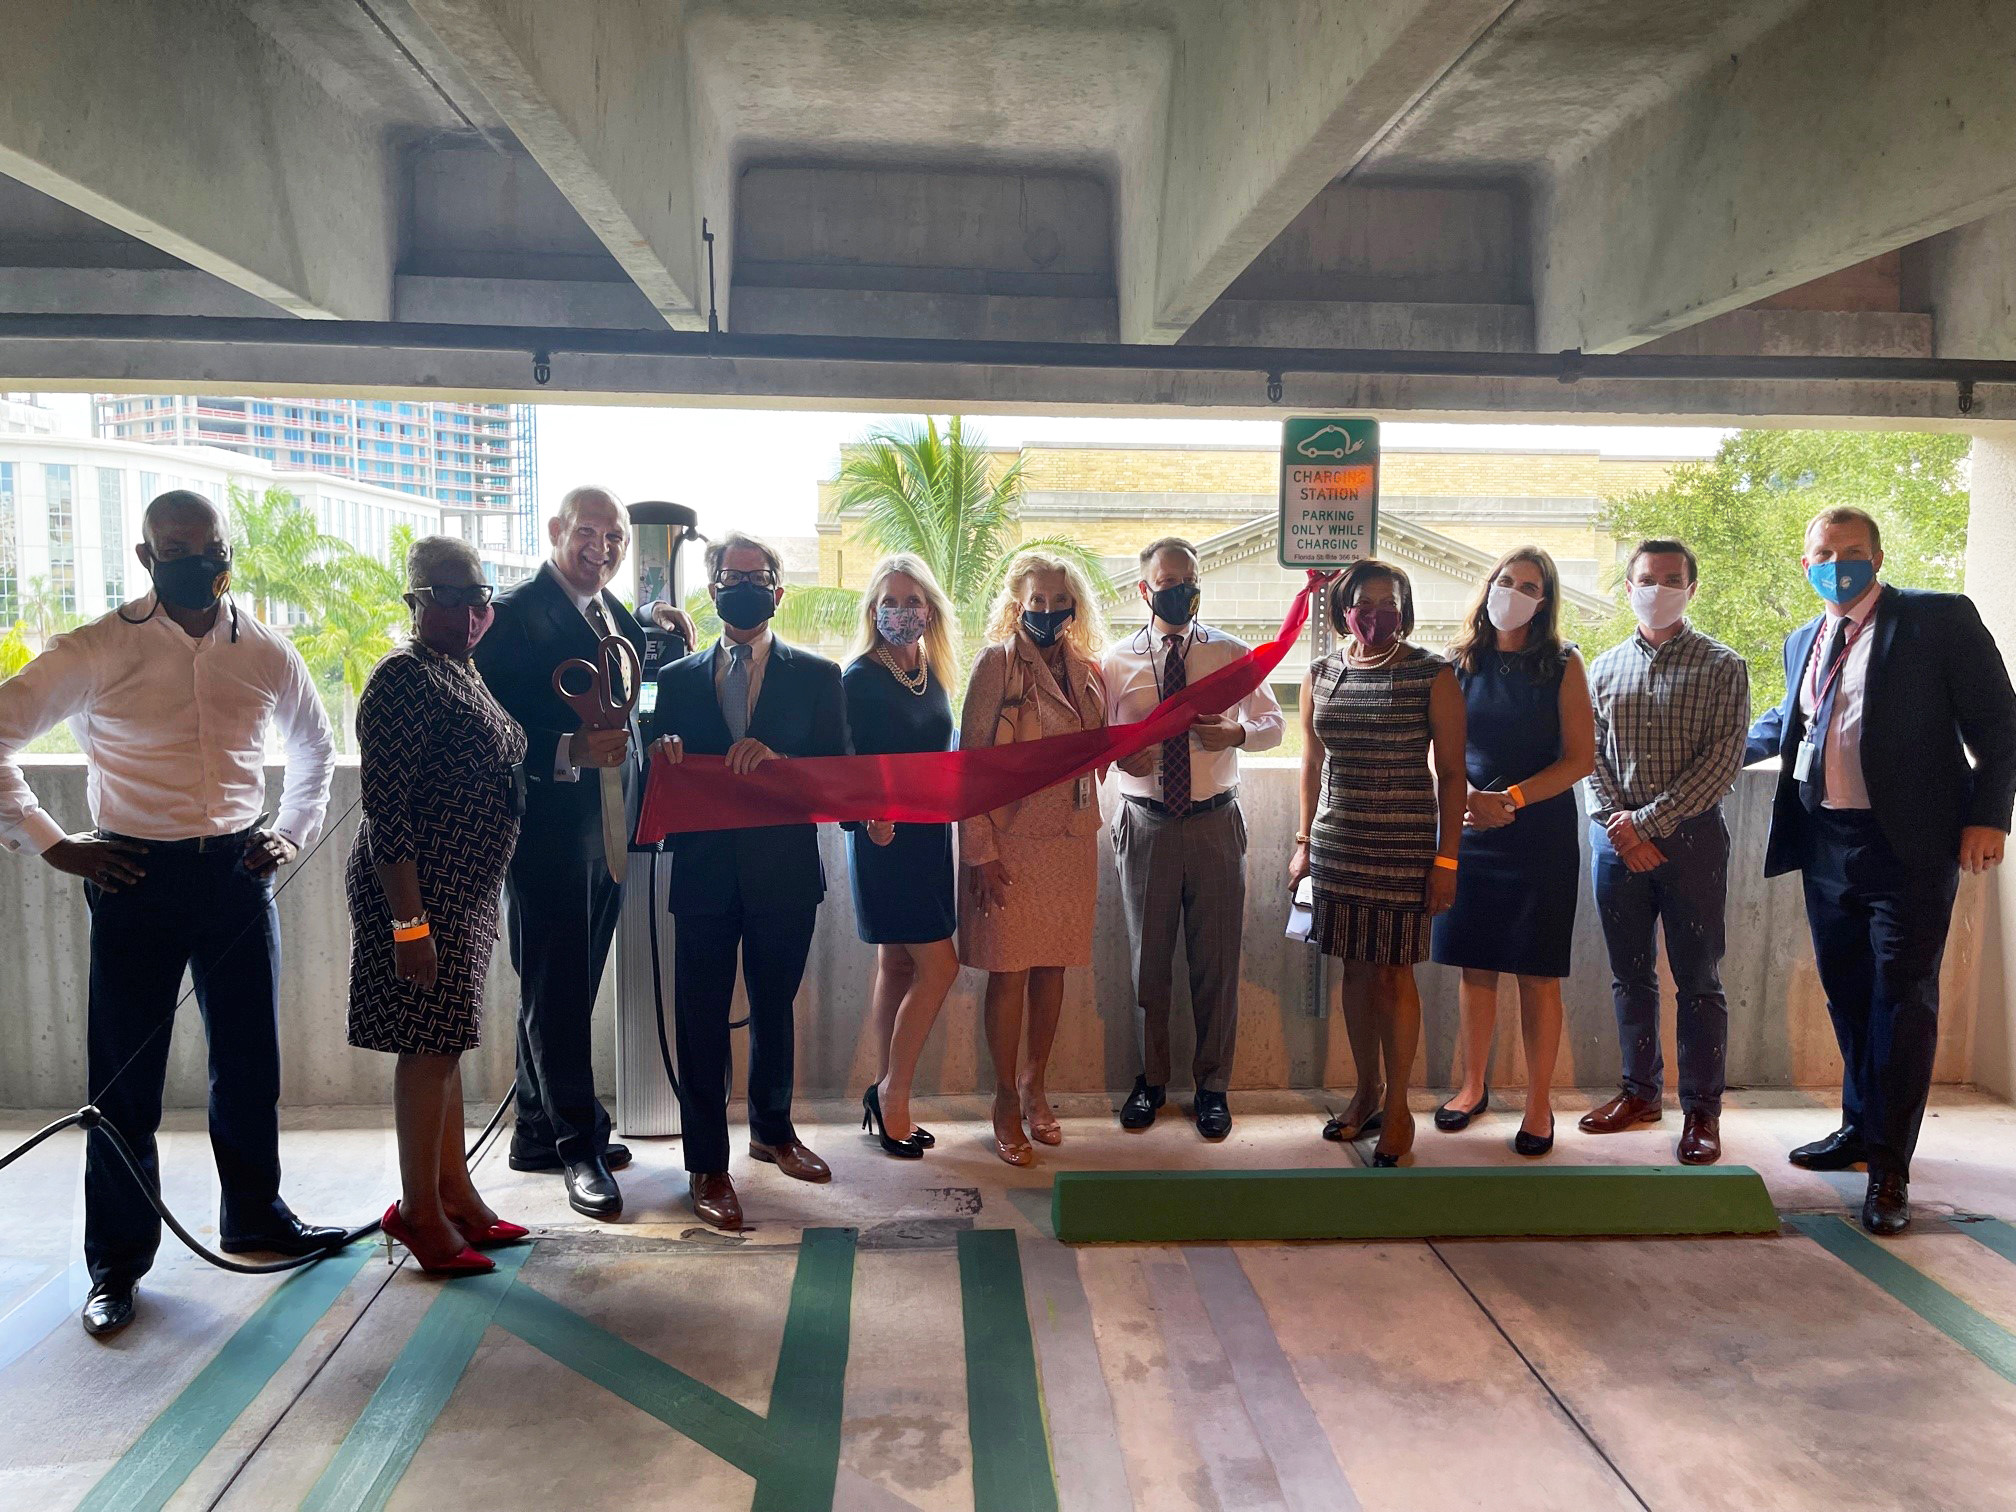 Commissioners and Administrators pose at charging stations